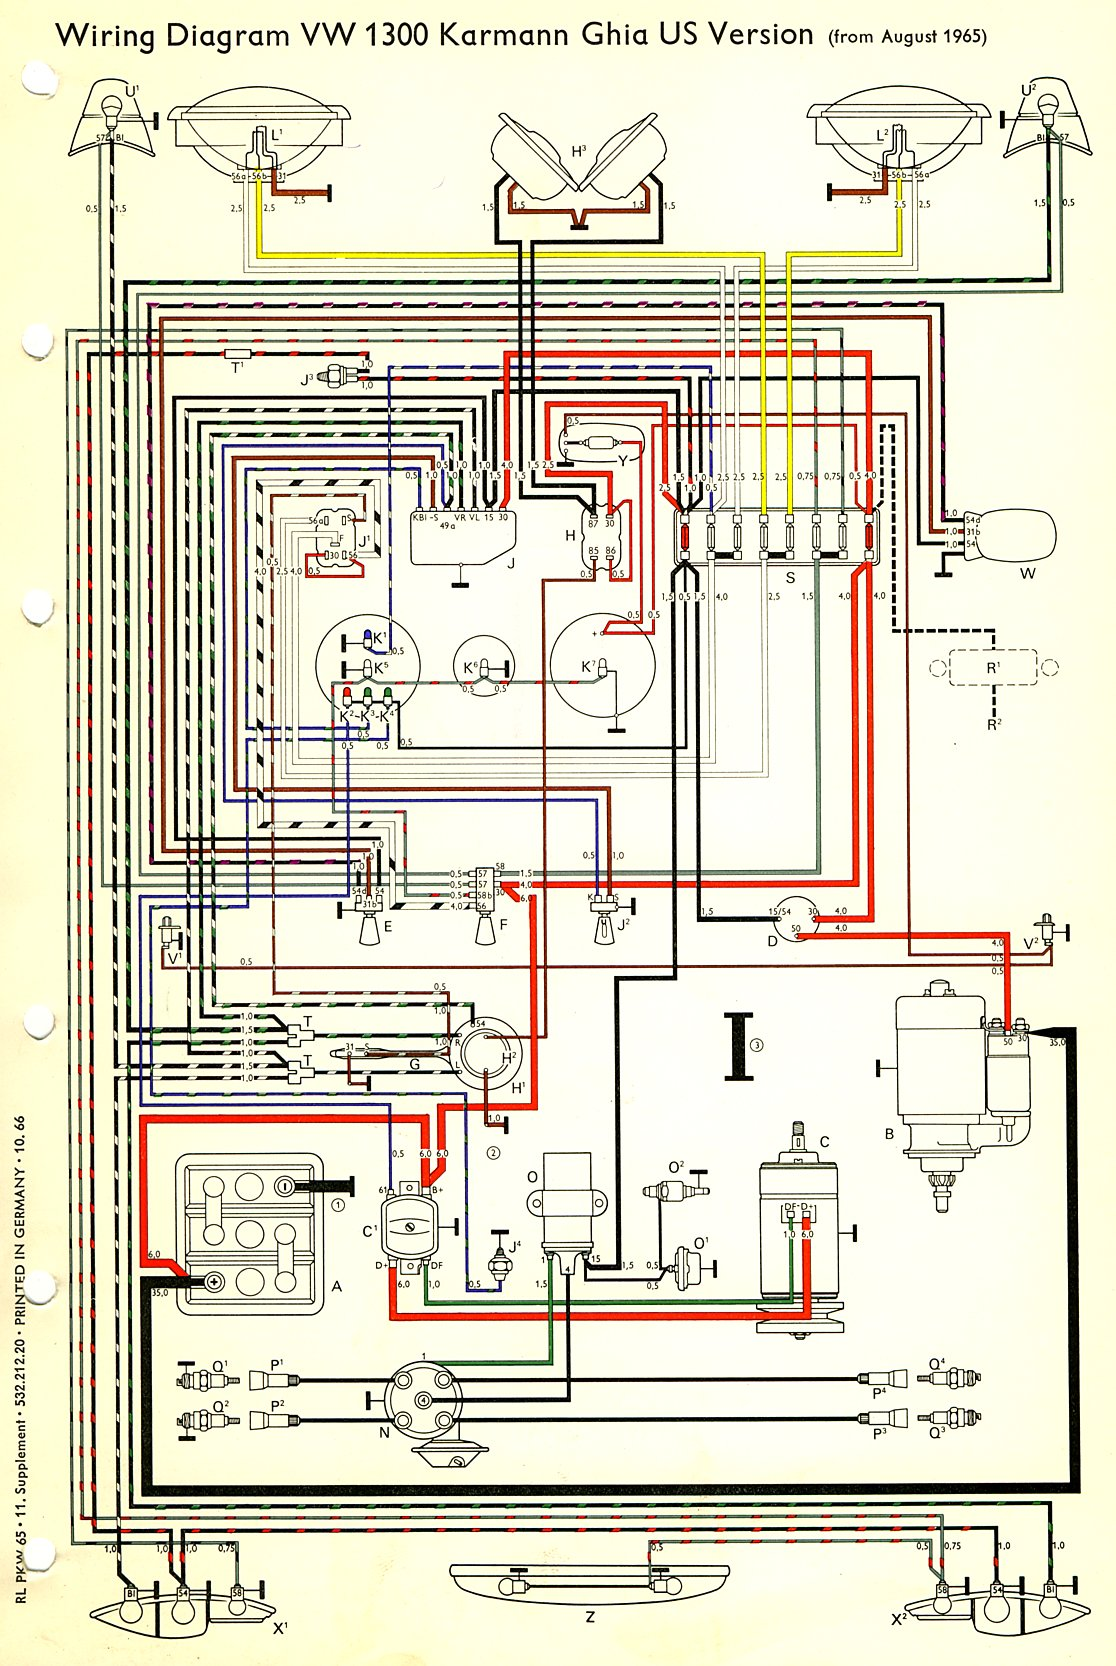 ghia_66_USA thesamba com karmann ghia wiring diagrams porsche 356 wiring diagram at crackthecode.co